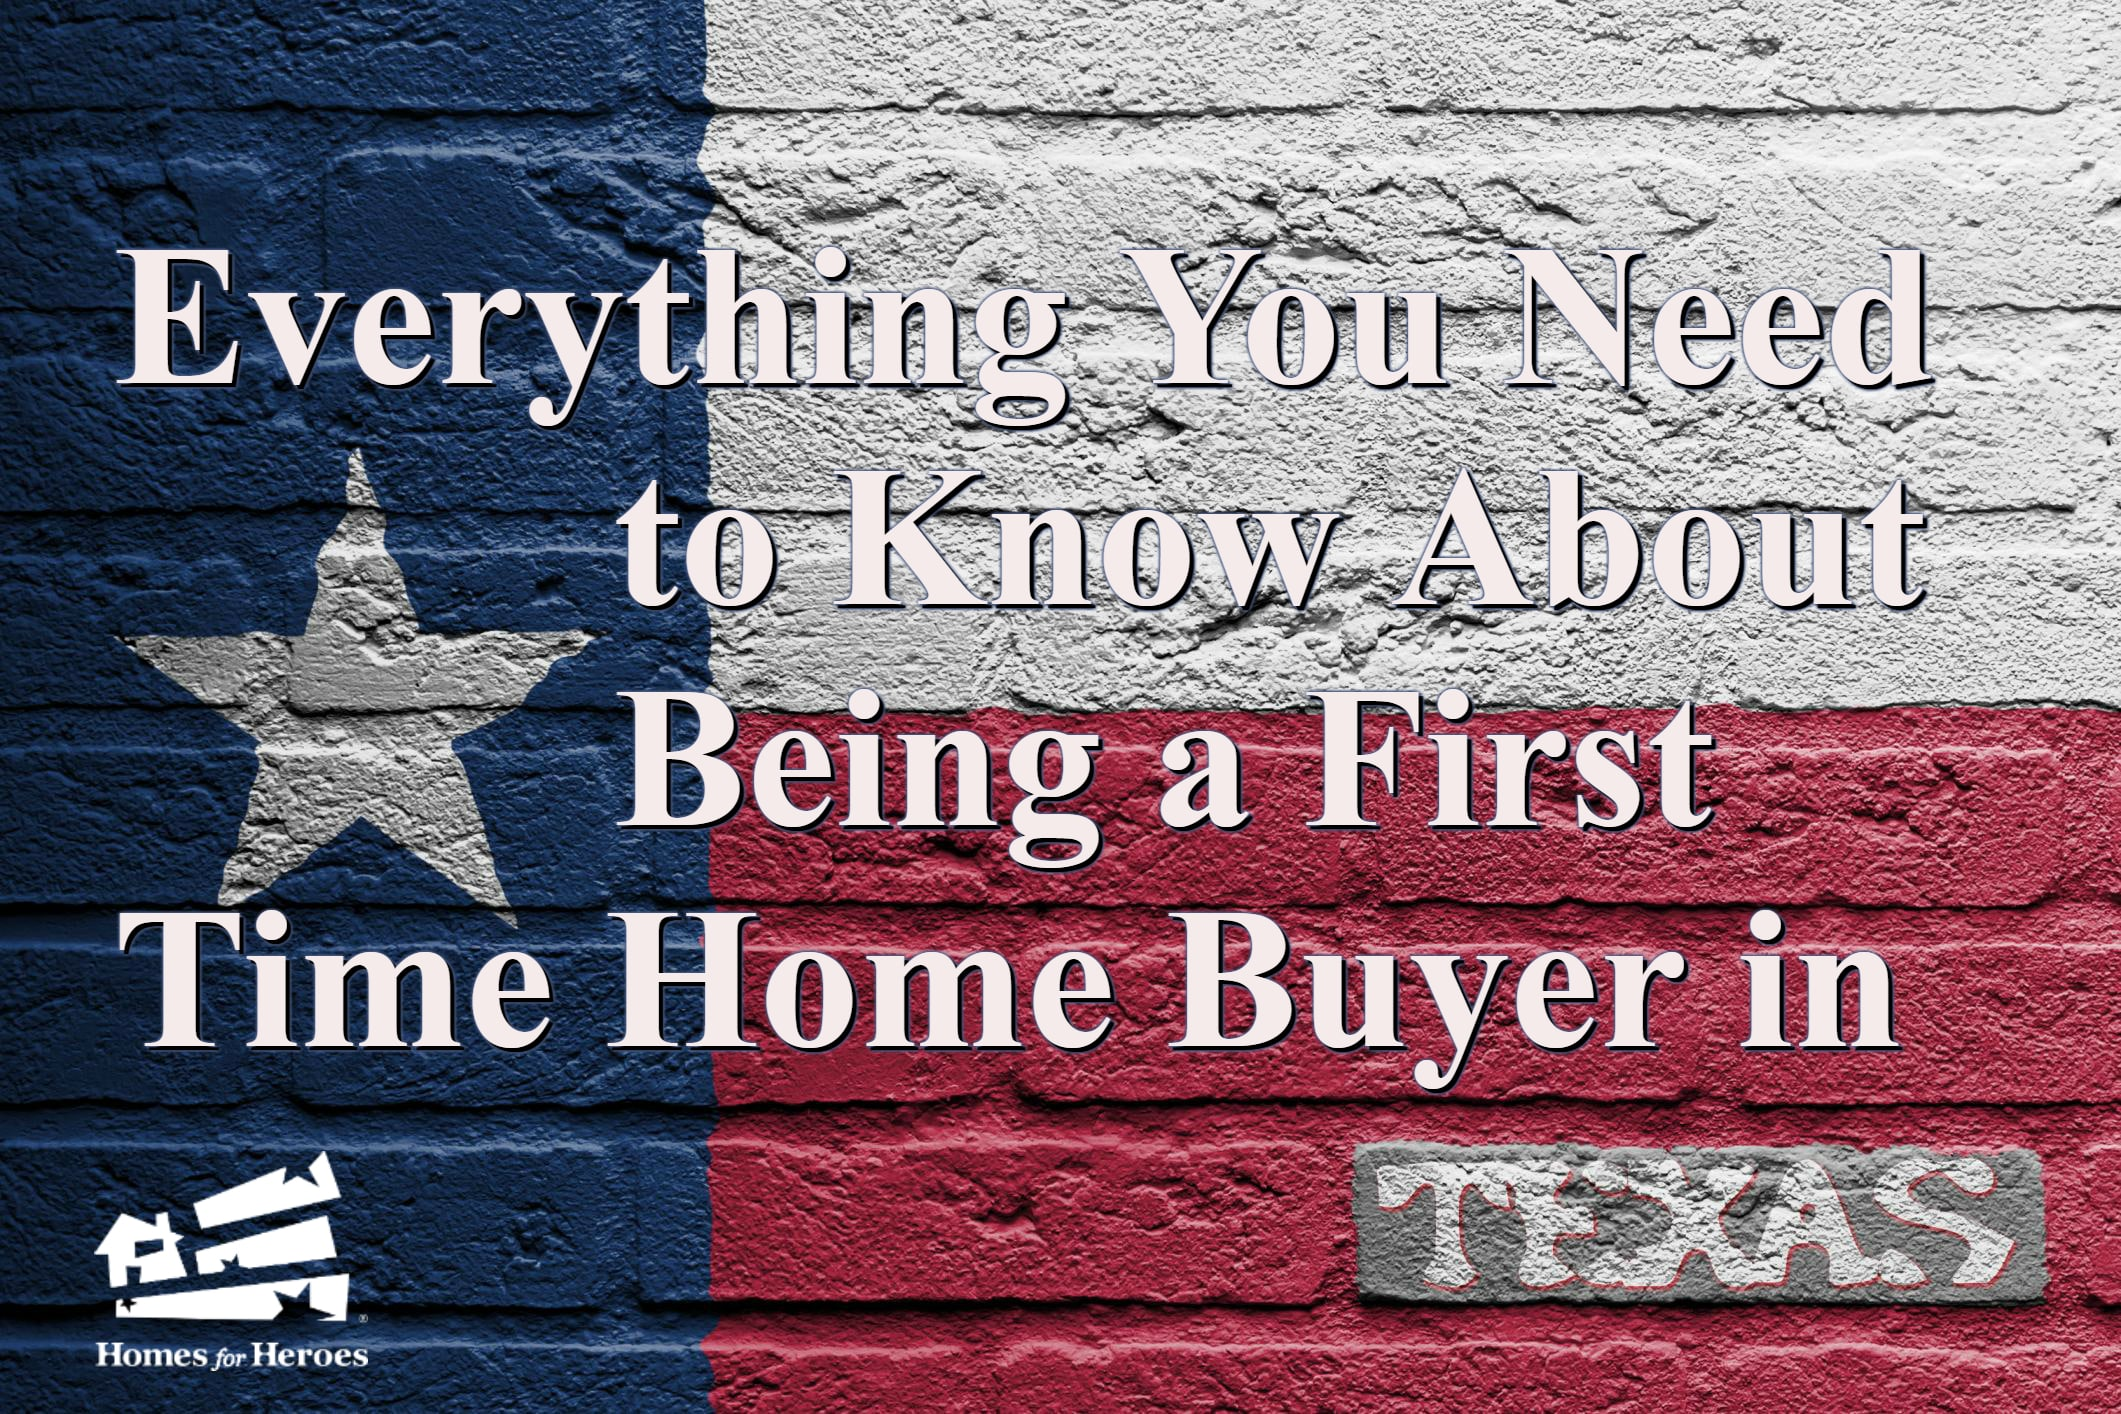 First Time Home Buyer in Texas